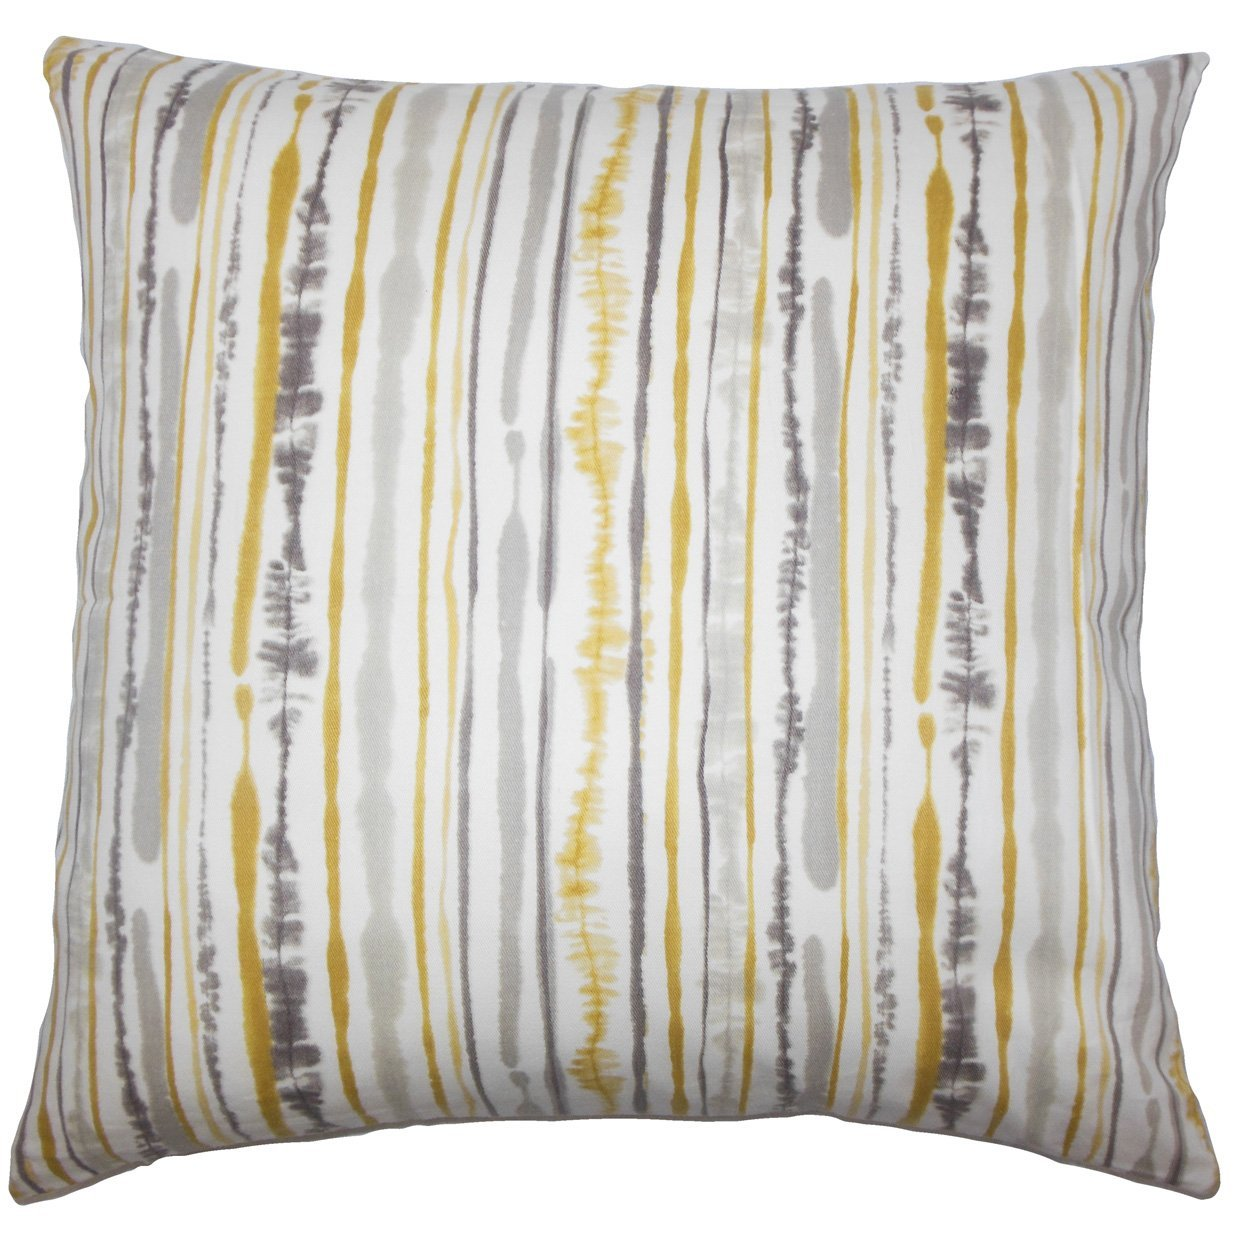 The Pillow Collection Jumoke Striped Bedding Sham Yellow Standard//20 x 26,